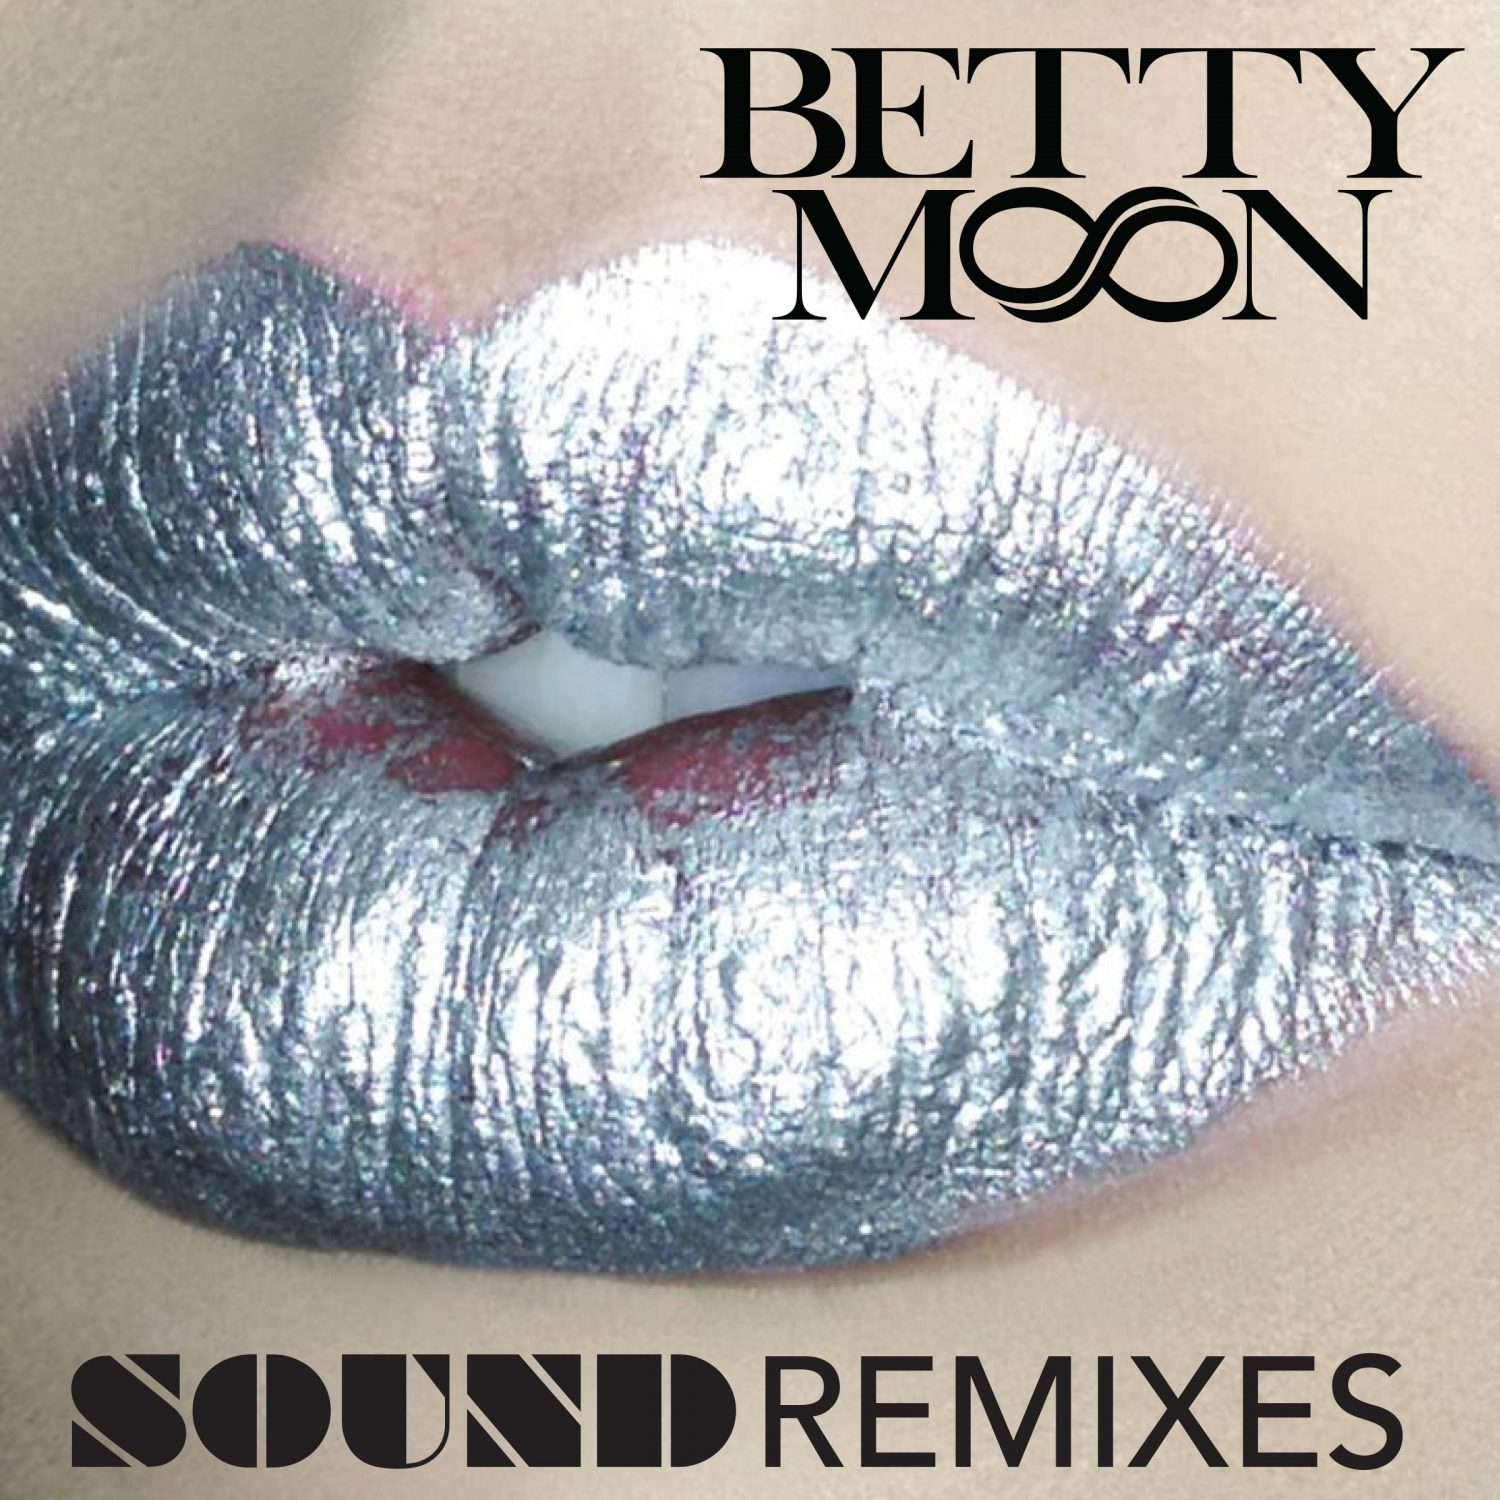 betty-moon-sound-remixes-cover